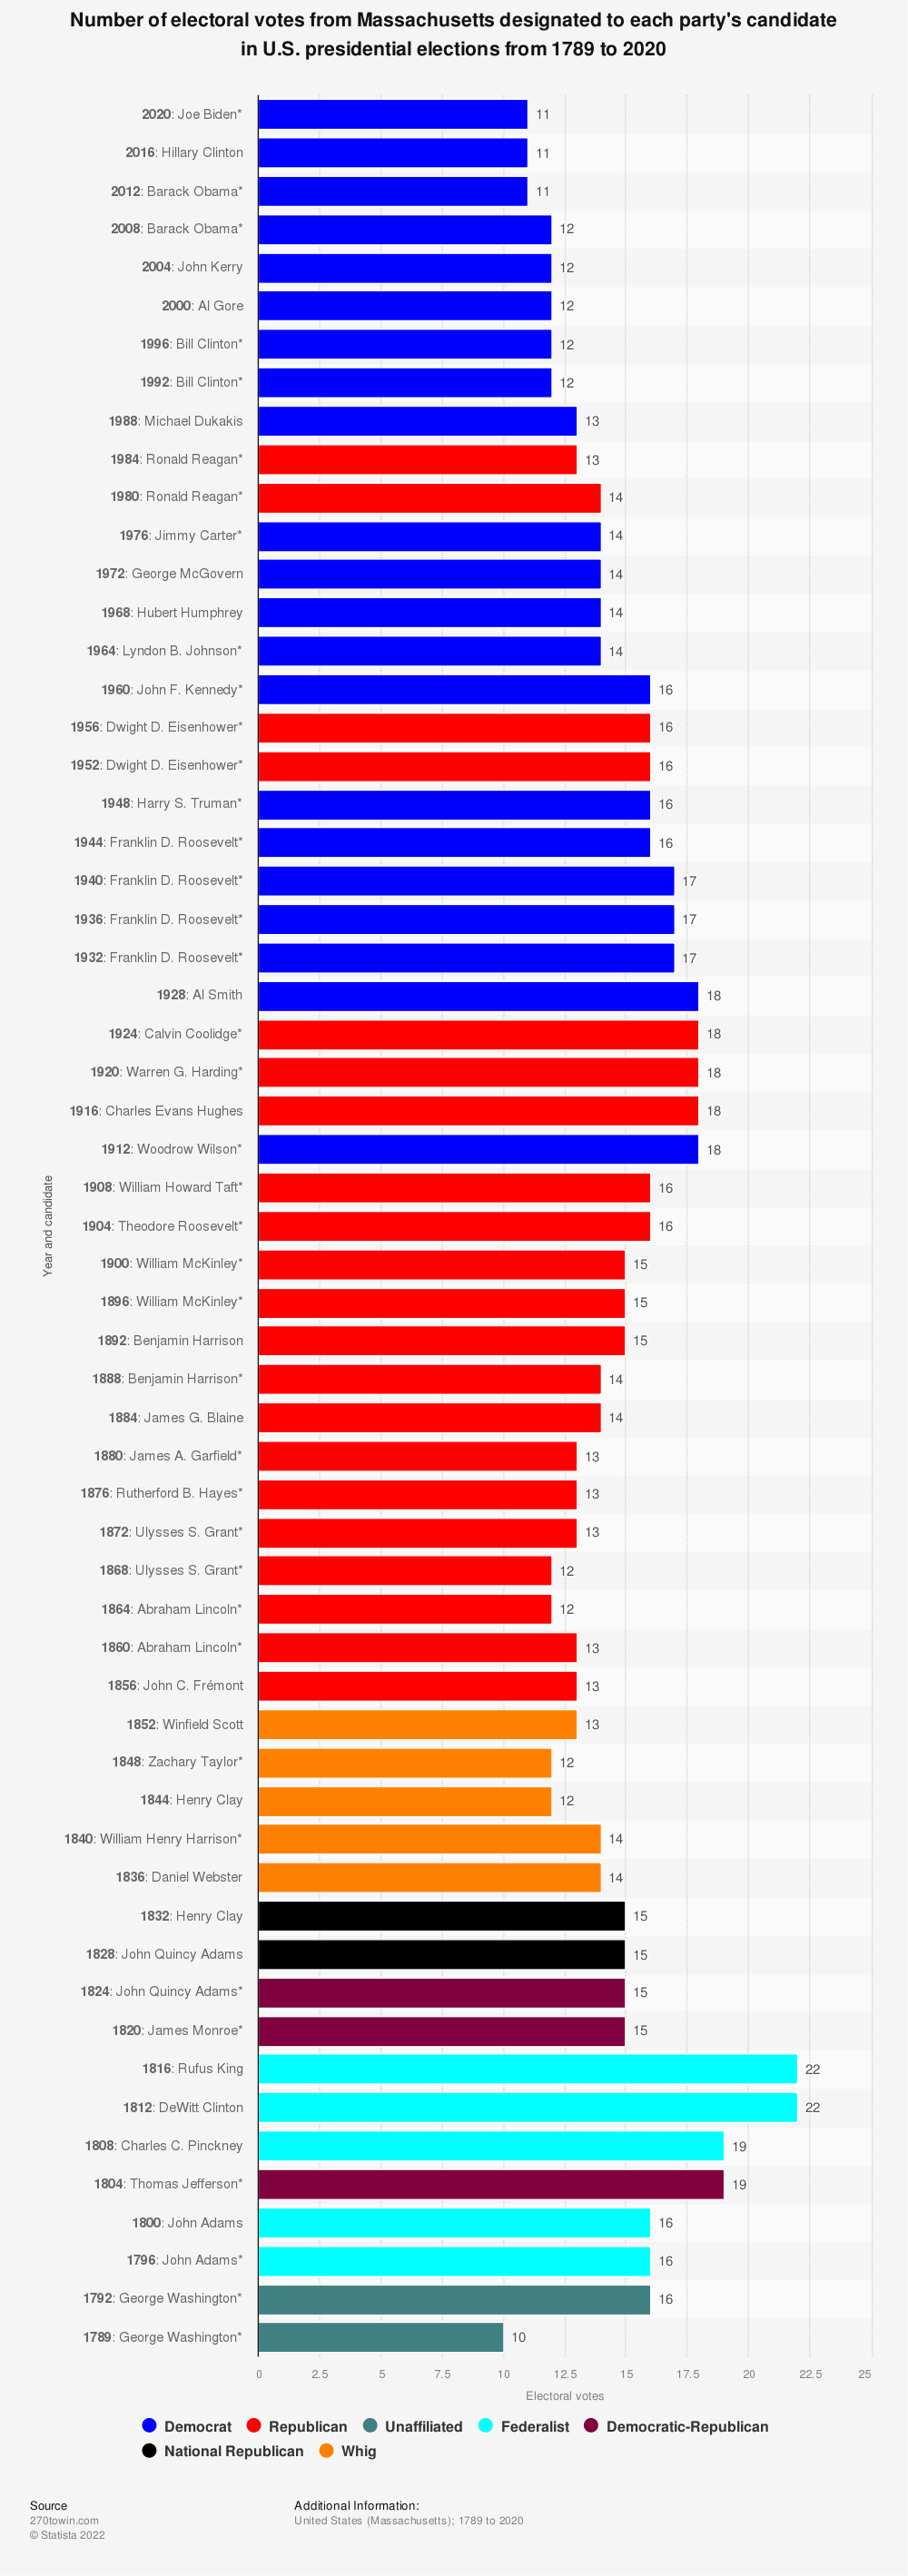 Statistic: Number of electoral votes from Massachusetts designated to each party's candidate in U.S. presidential elections from 1789 to 2020 | Statista